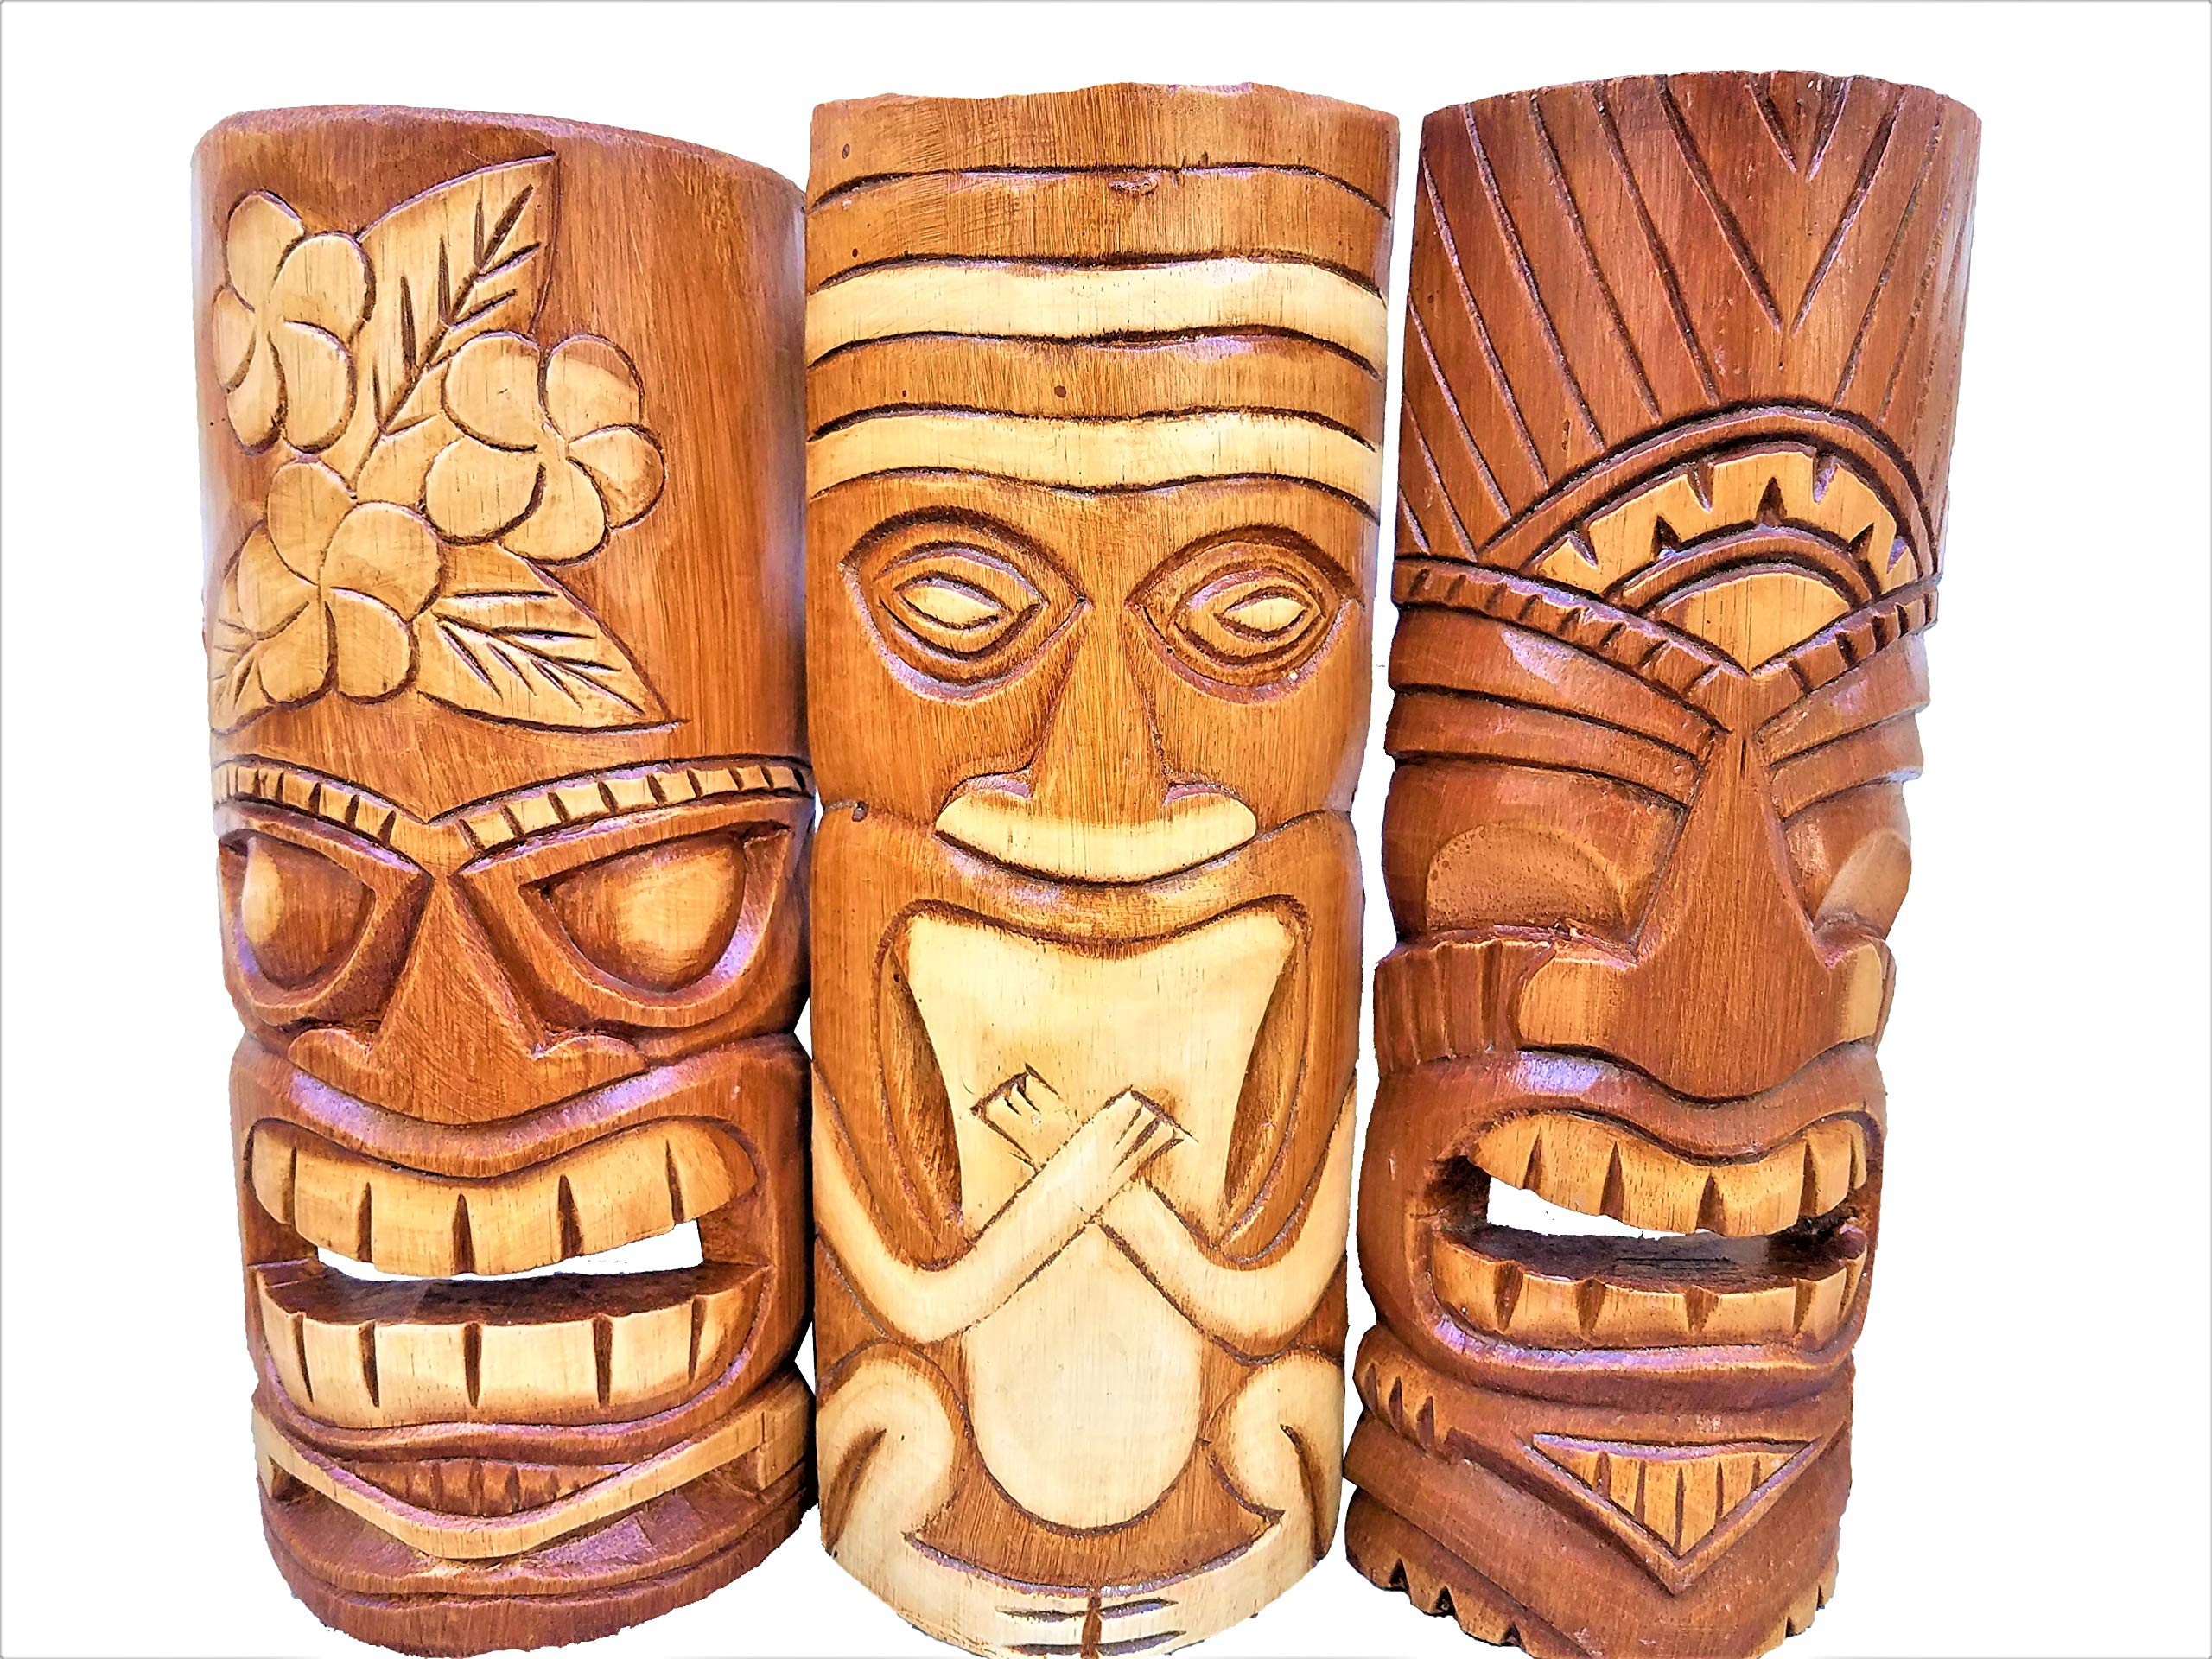 All Seas Imports Set of (3) Wooden Handcarved Natural Style 12'' Tall Tiki Masks Tropical Wall Decor! by All Seas Imports